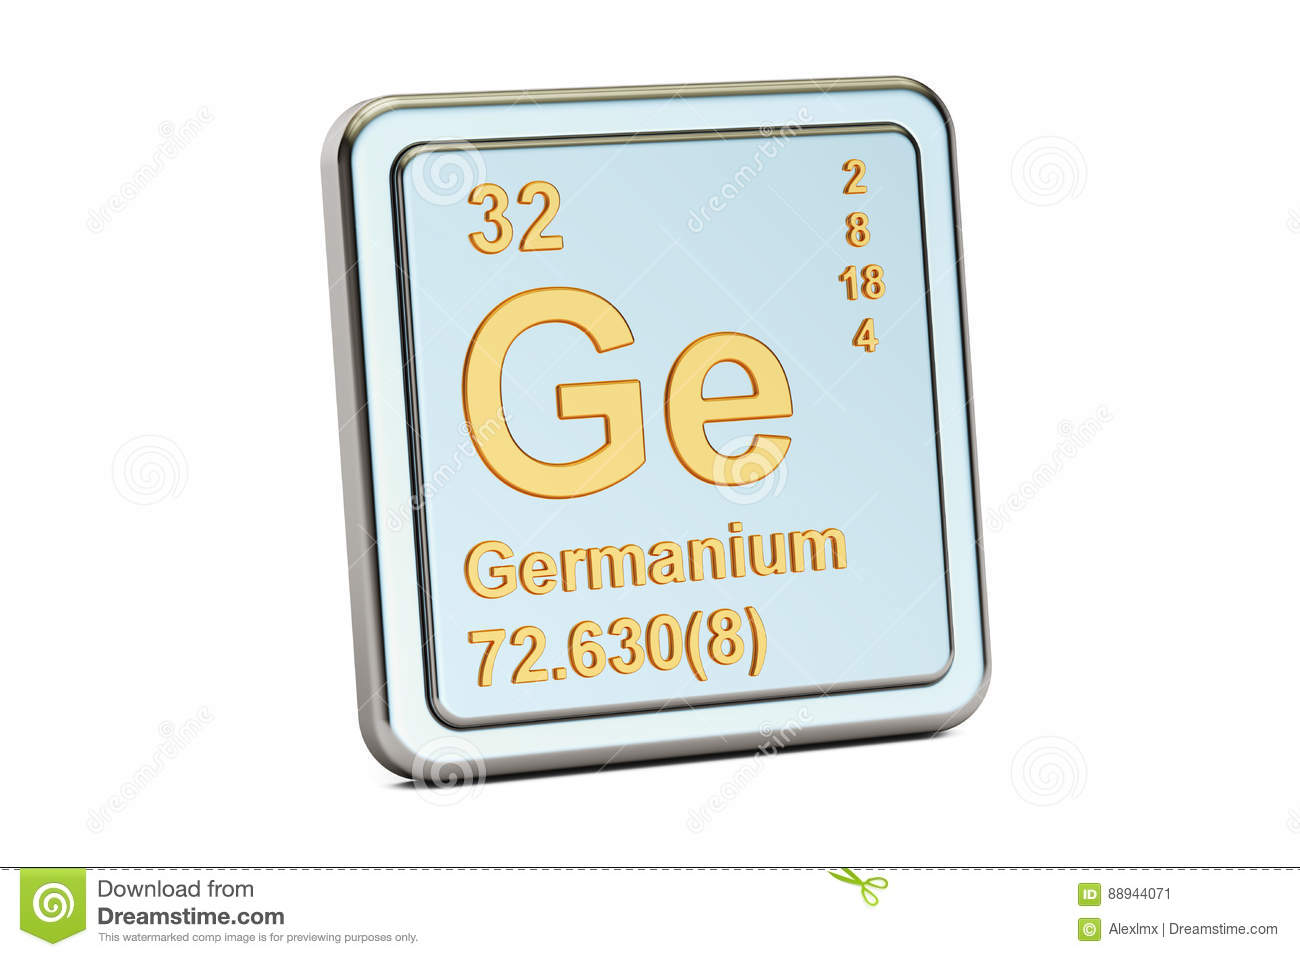 Germanium Ge Chemical Element Sign 3d Rendering Stock Illustration